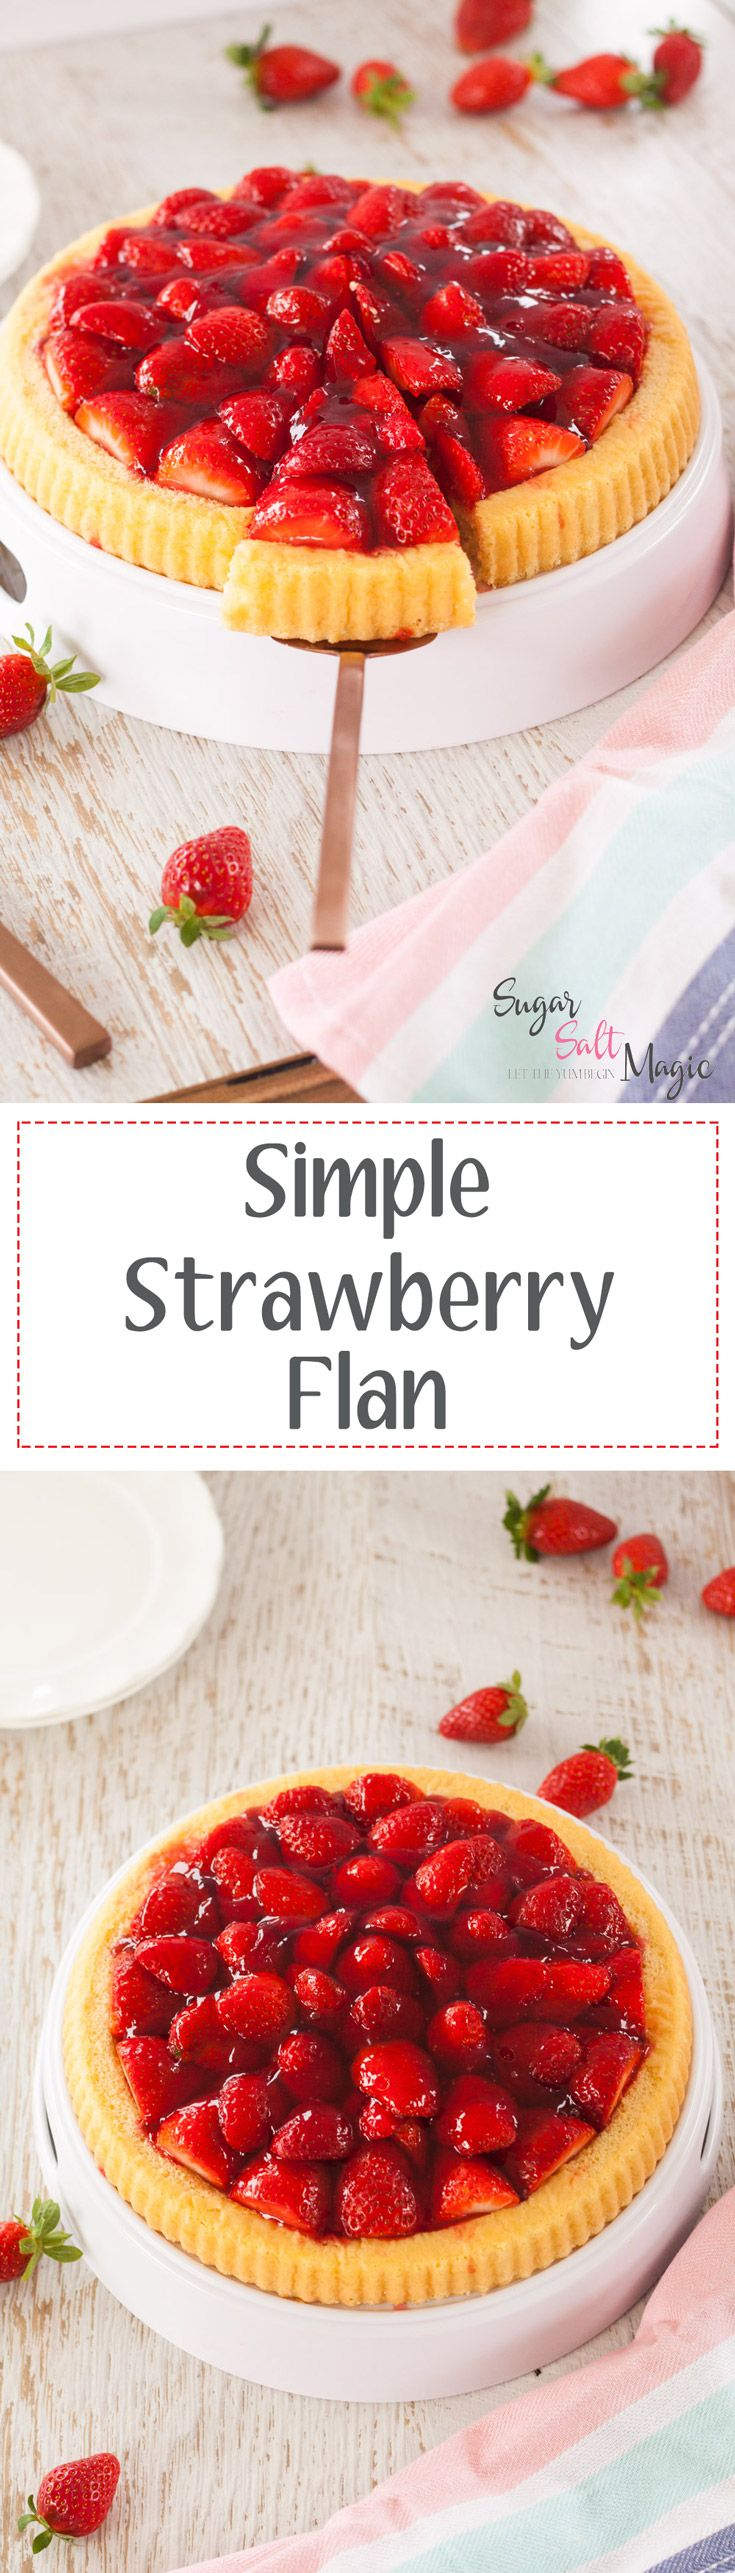 Simple Strawberry Flan by Sugar Salt Magic. A quick and easy strawberry tart with light, fluffy sponge base.. via @sugarsaltmagic